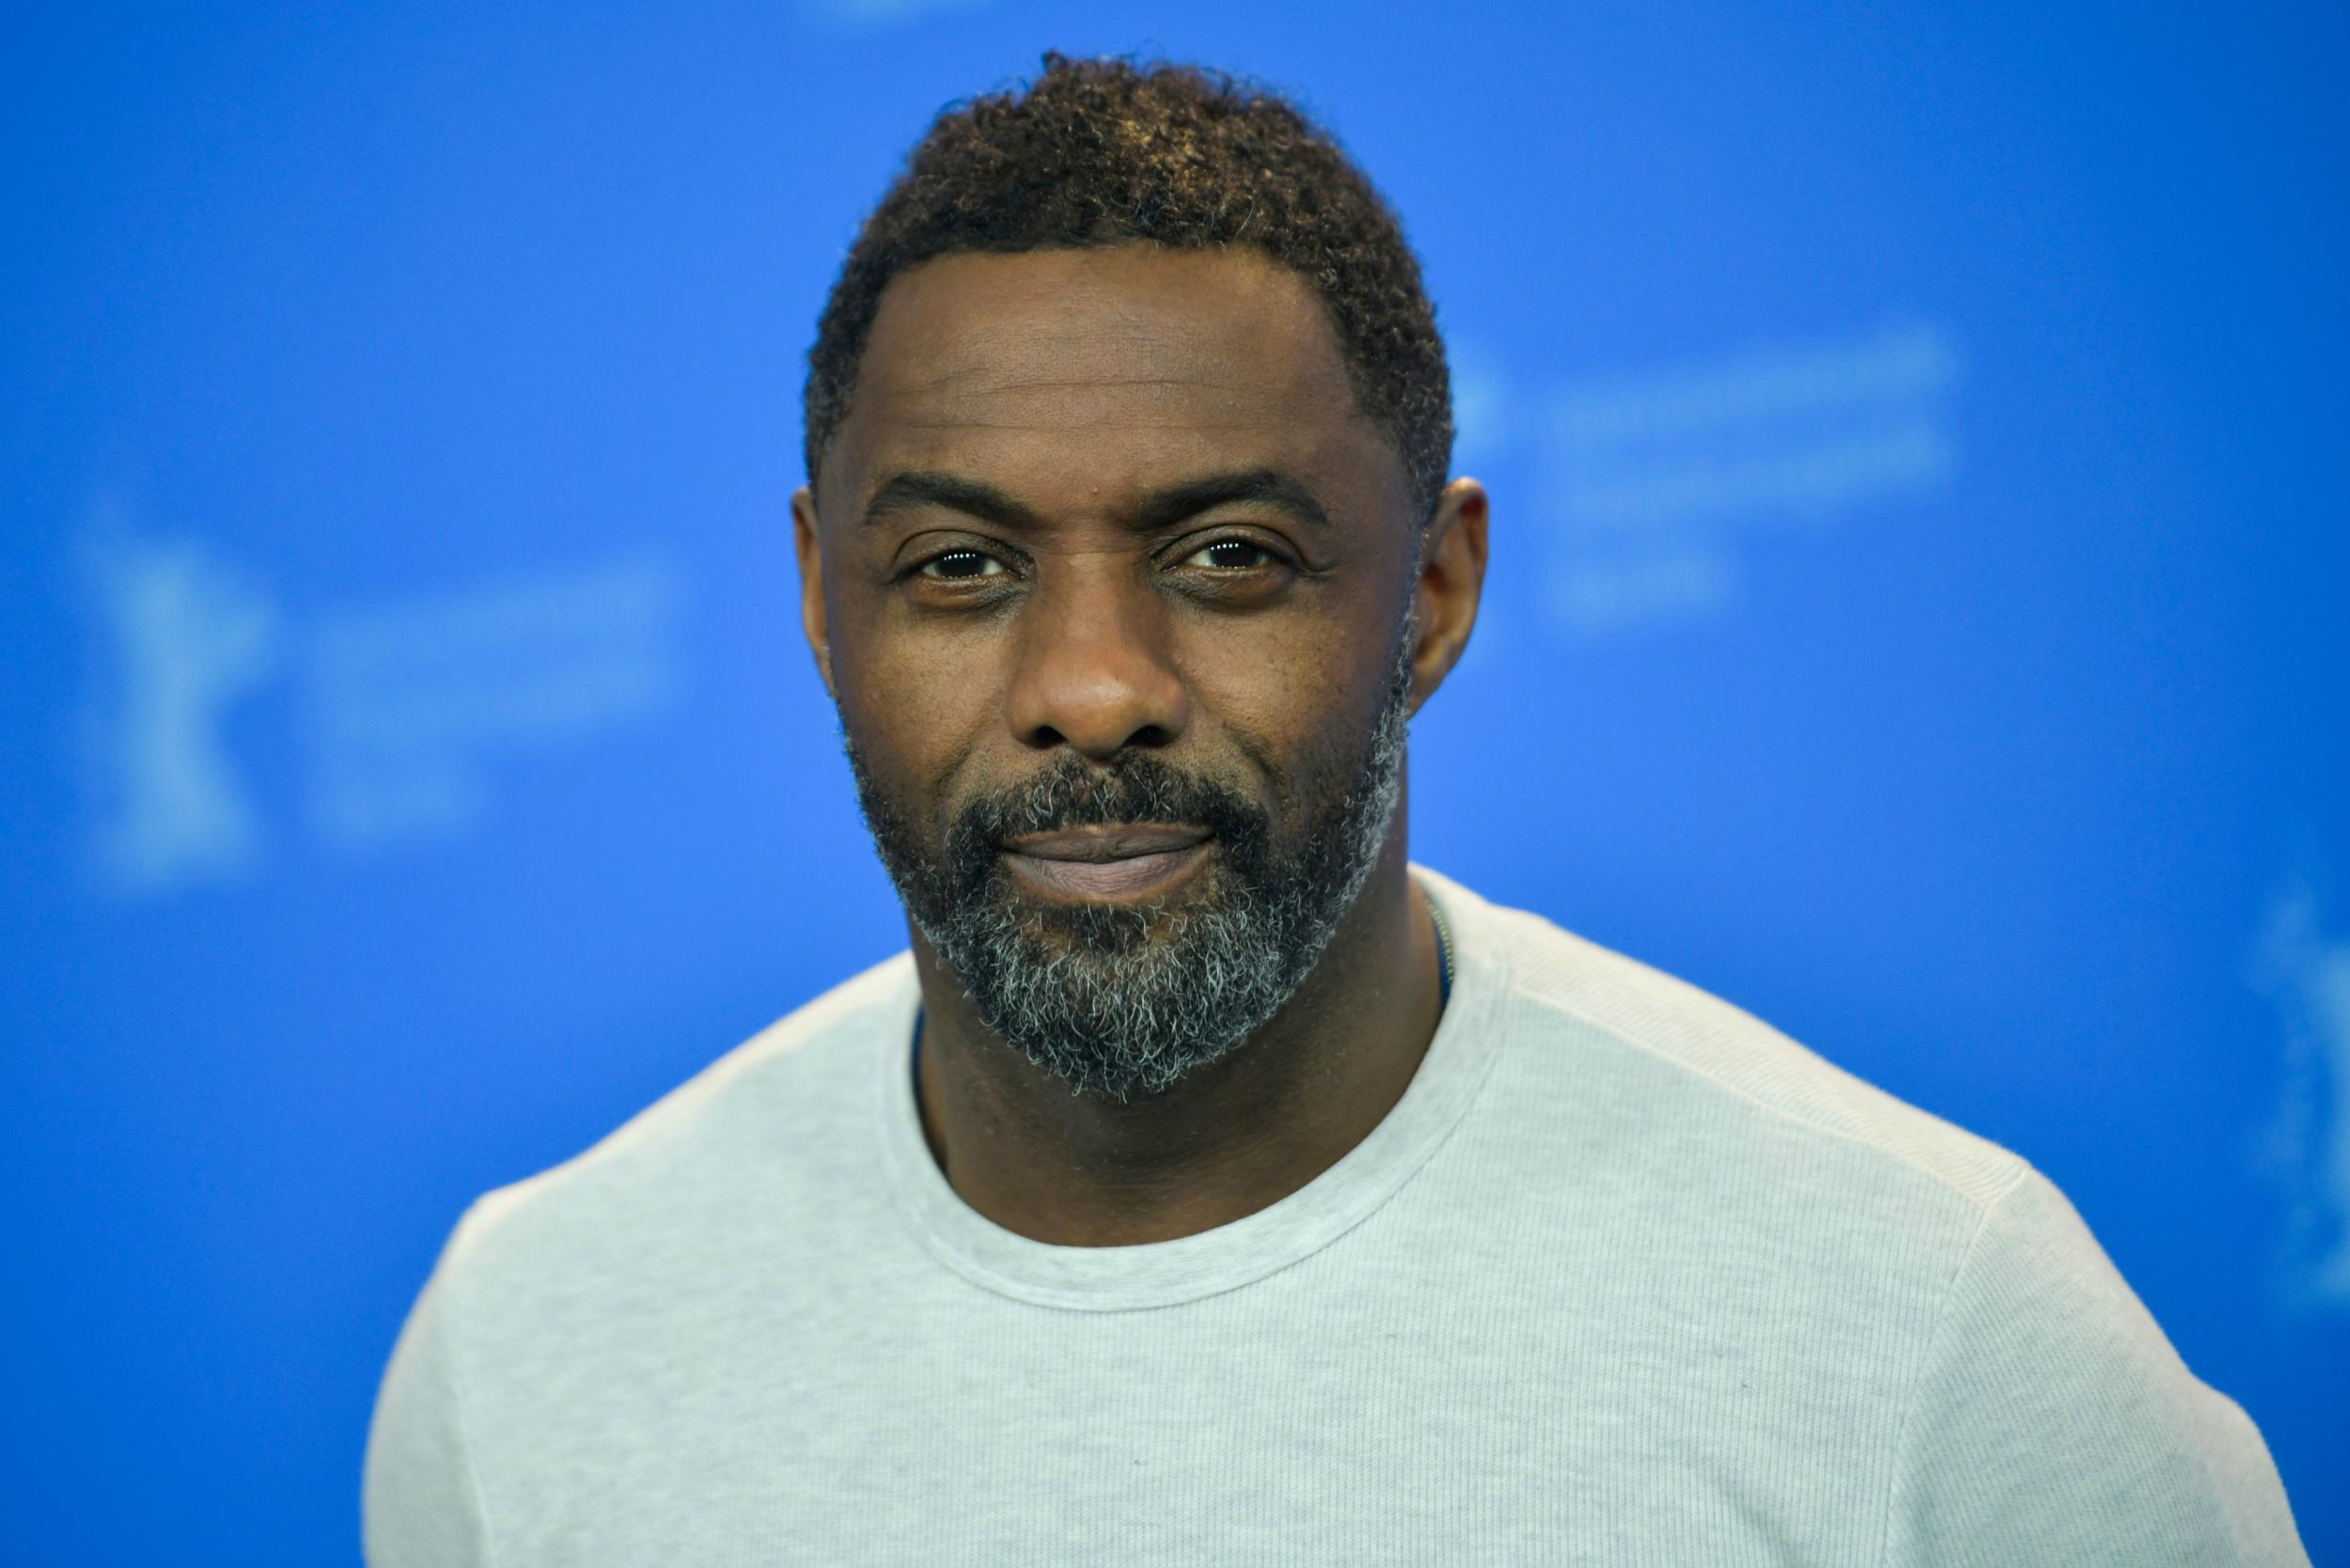 James Bond boss says 'door open' to black 007 with Idris Elba hinted as frontrunner.